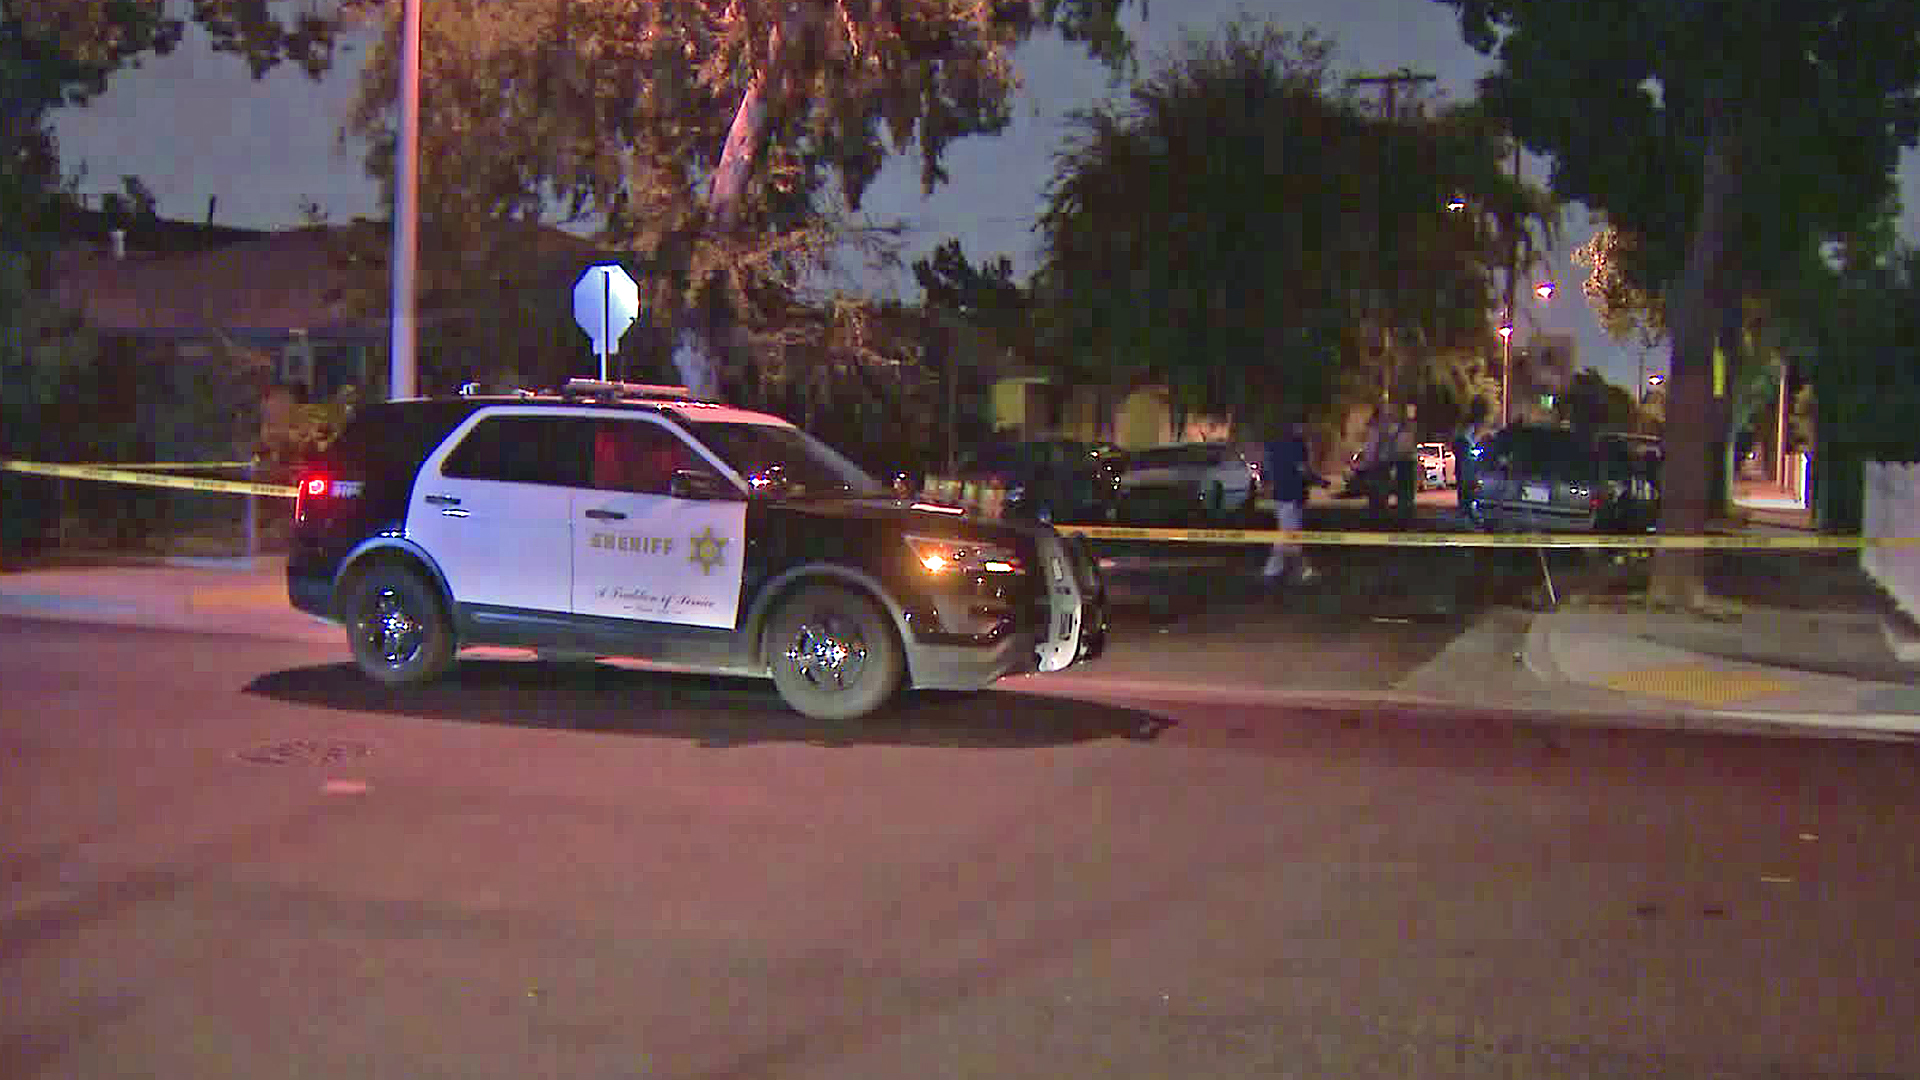 Authorities investigate a fatal shooting in Maywood on Oct. 5, 2018. (Credit: KTLA)